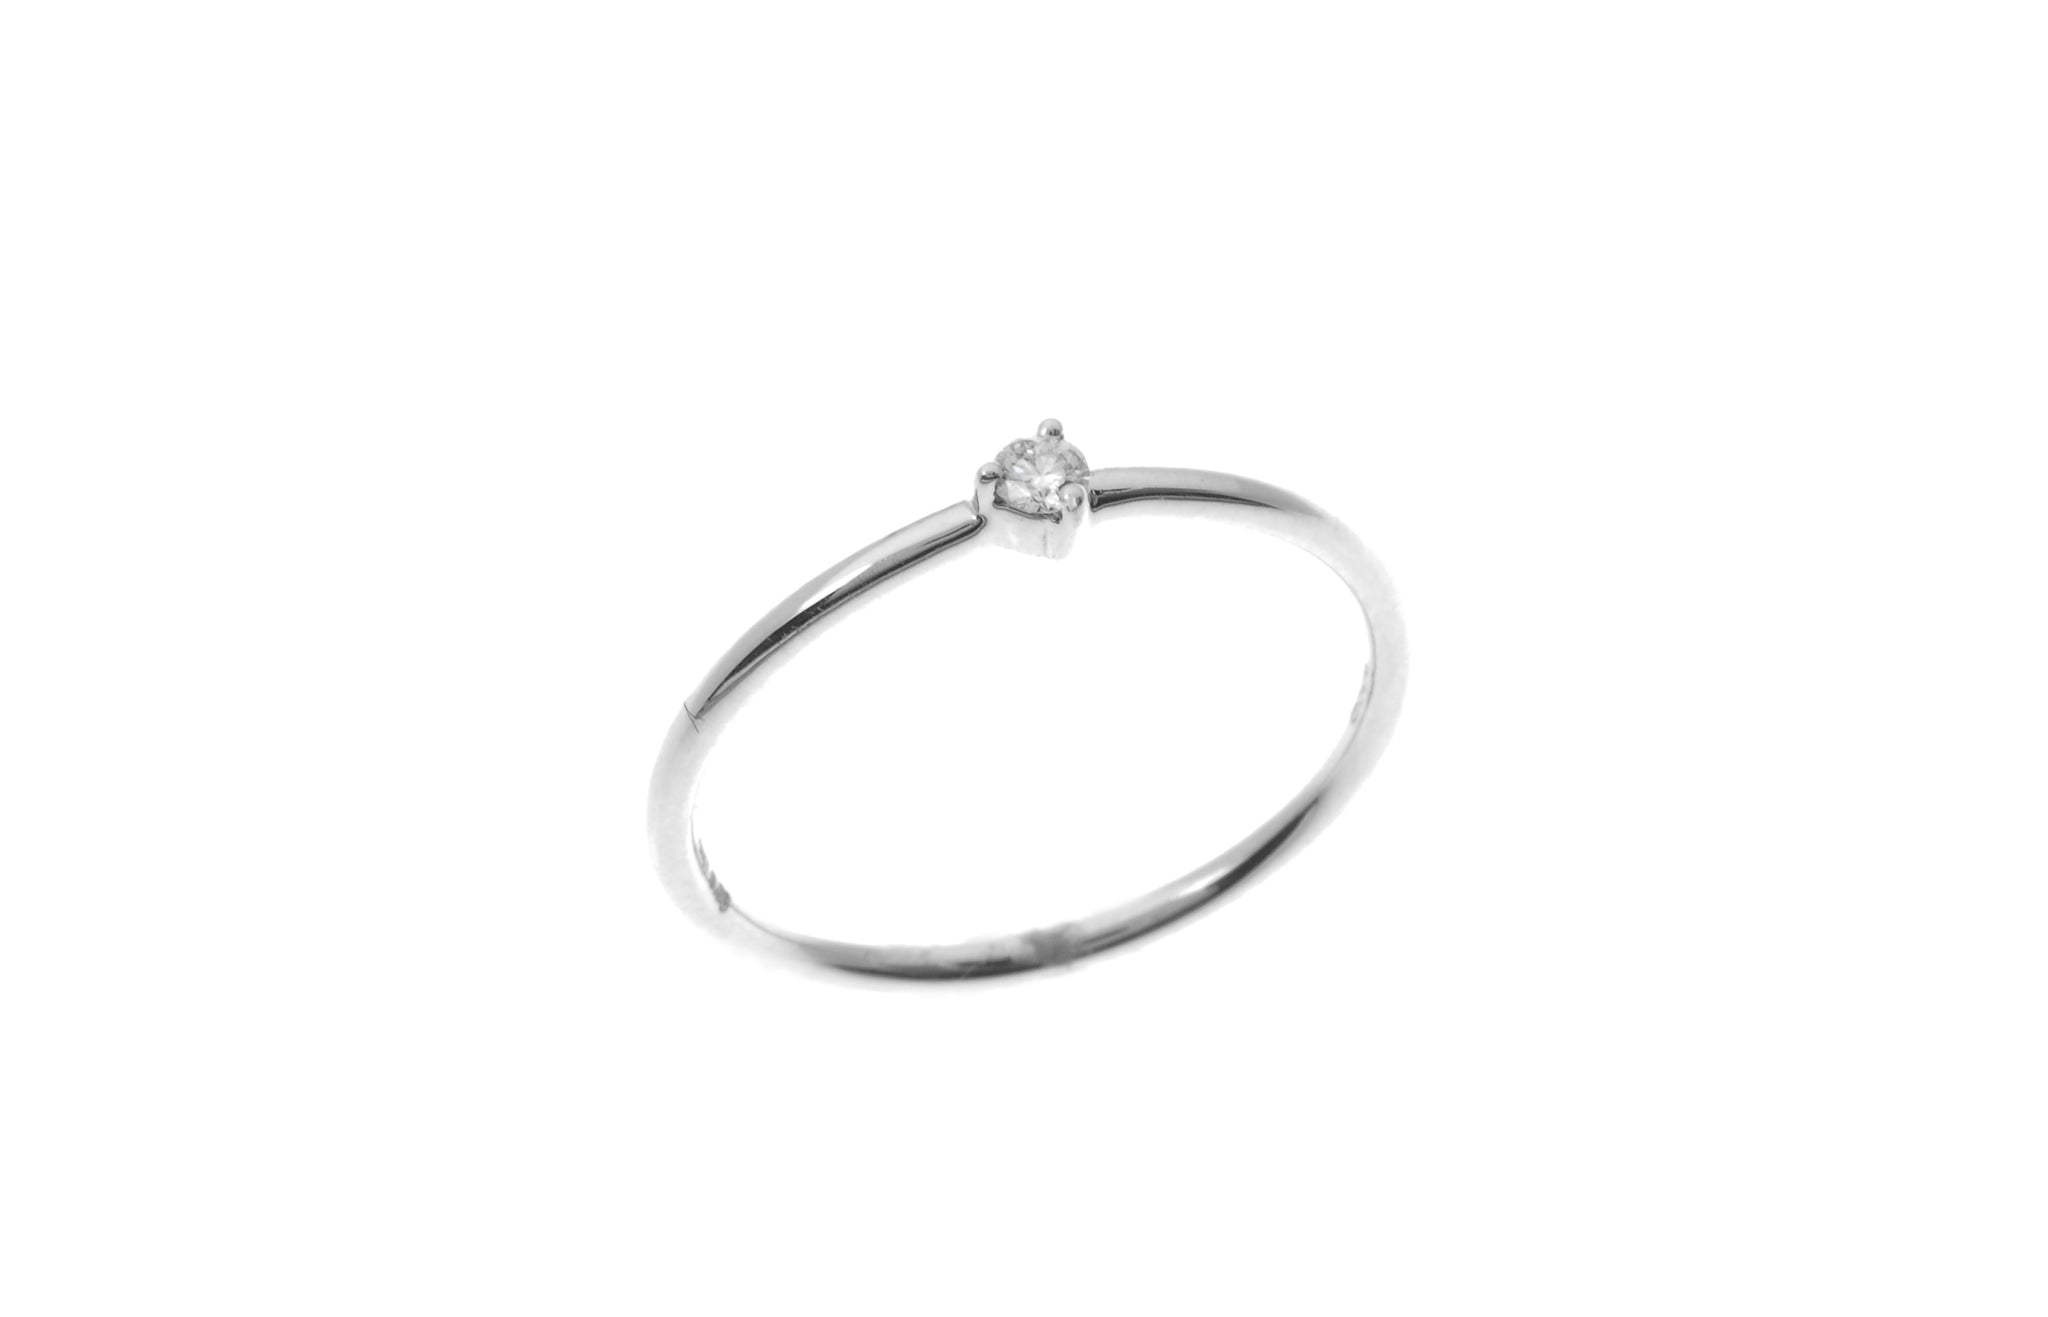 18ct White Gold Diamond Engagement Ring (MCS1862)